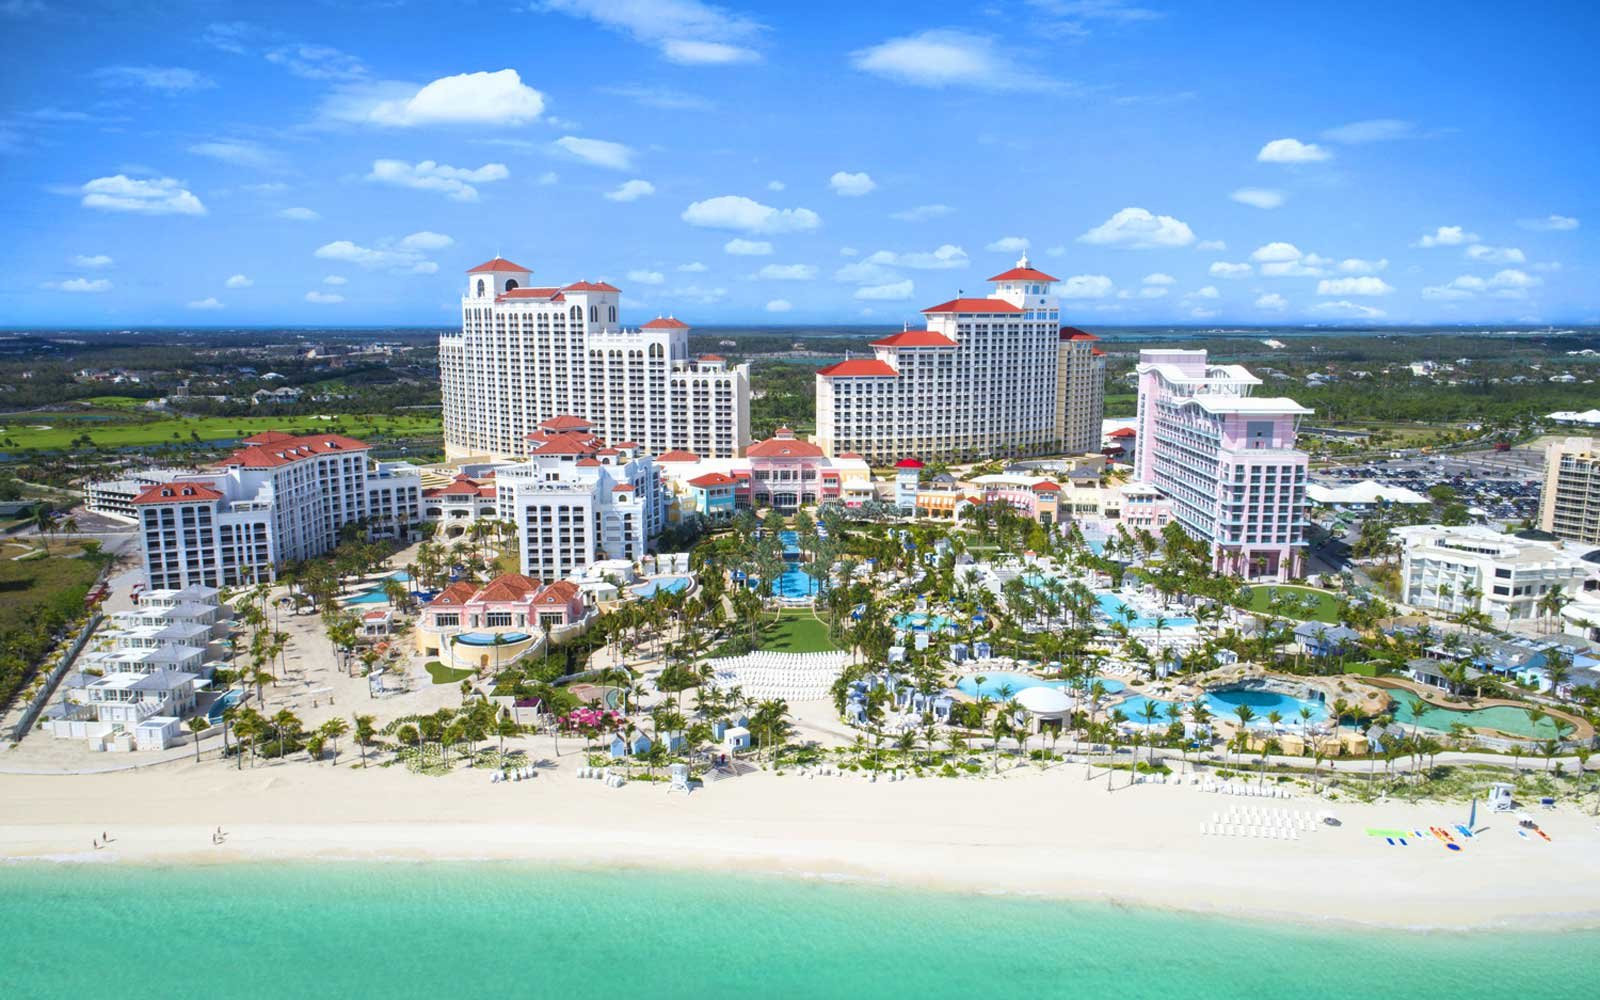 Baha Mar resort complex in the Bahamas